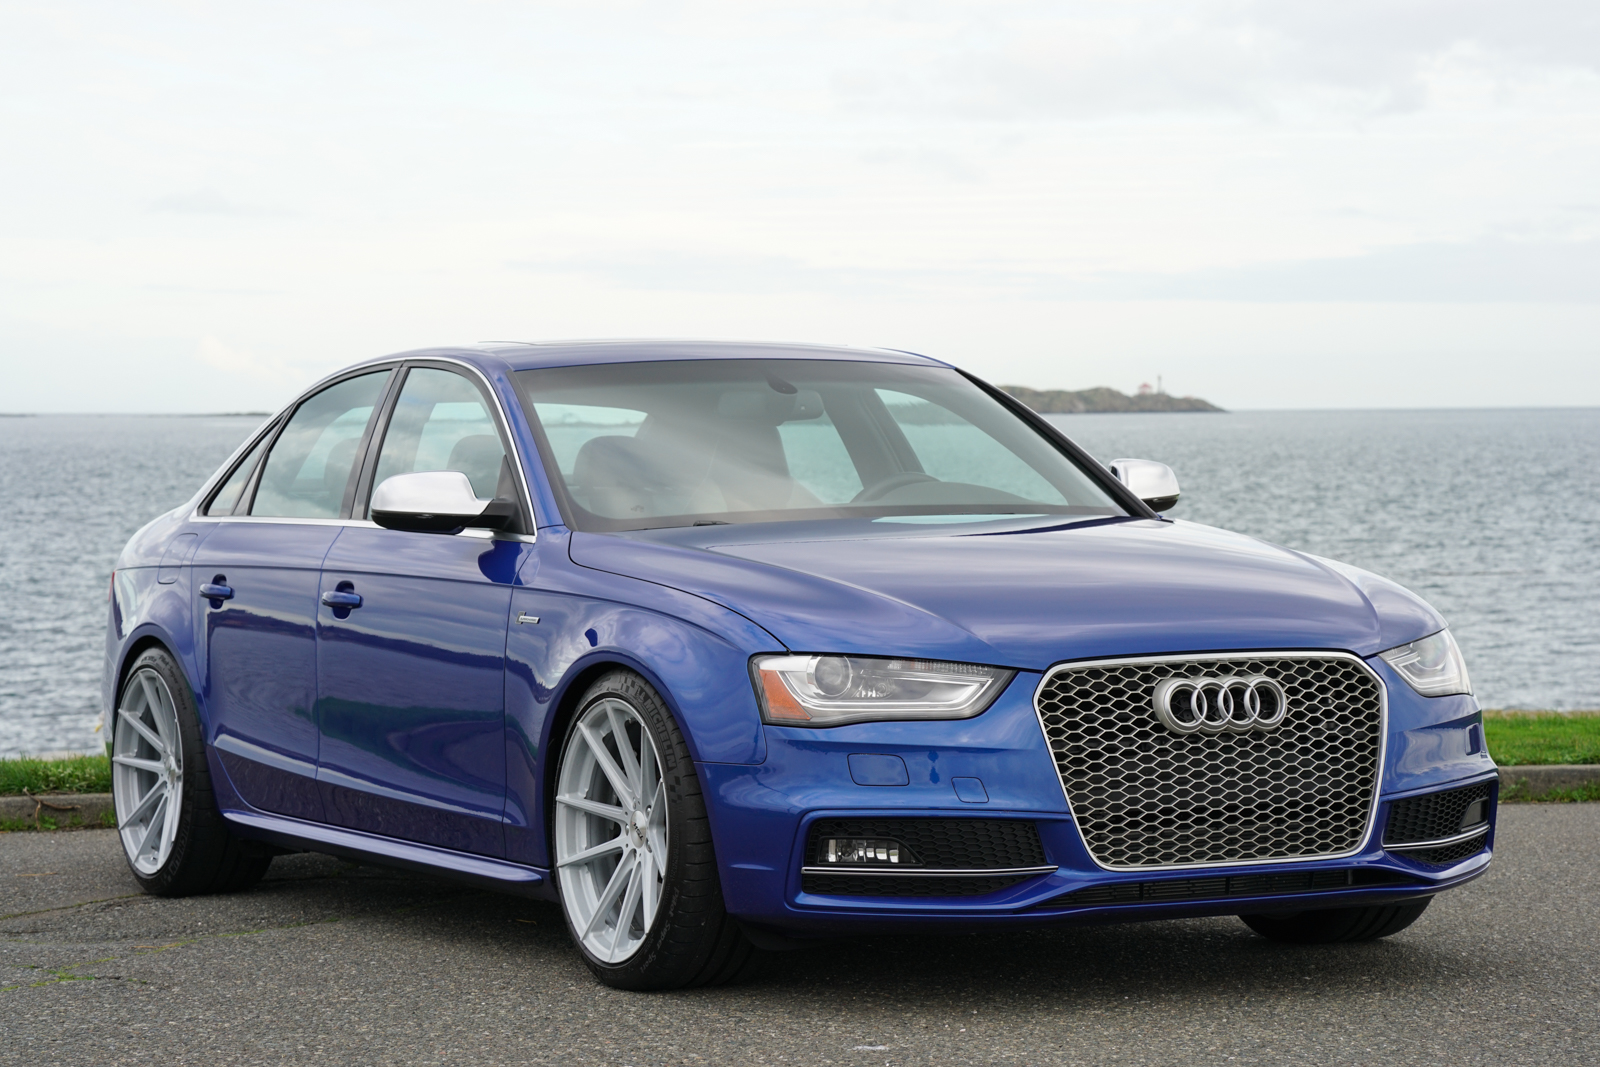 2015 Audi S4 3 0T Technik Quattro For Sale | Silver Arrow